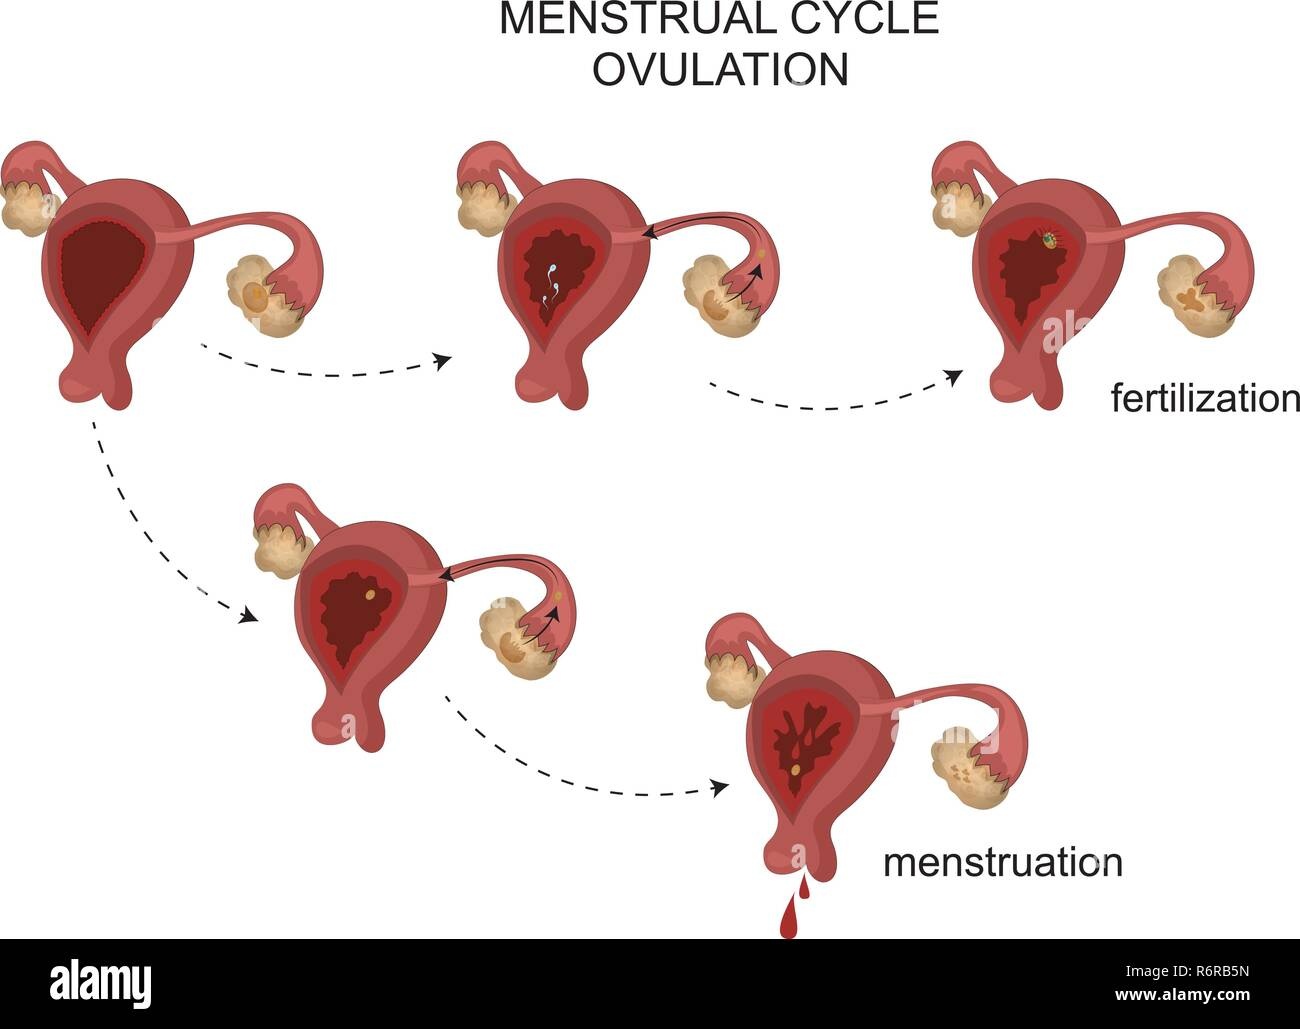 vector illustration of female reproductive organs. Menstrual cycle. - Stock Image